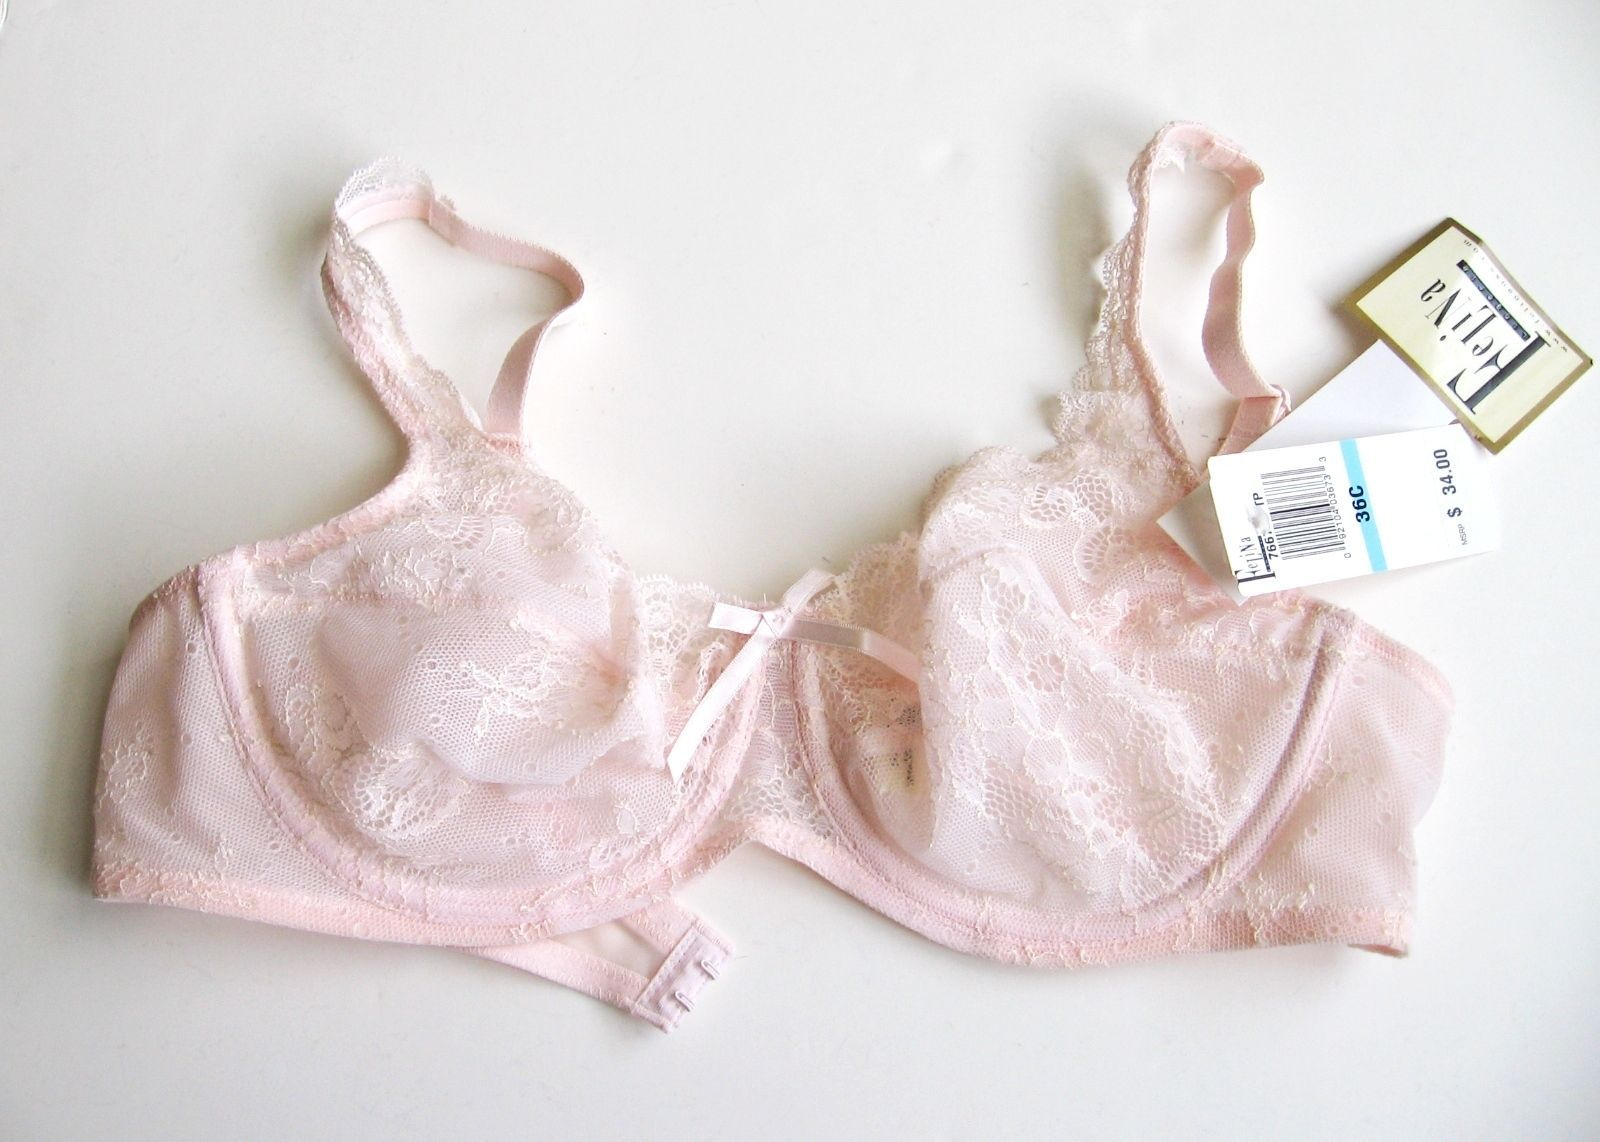 XB0050 Wacoal NEW 85333 Pink Seamless Embroidered Lace N Mesh Contour UW Bra PR